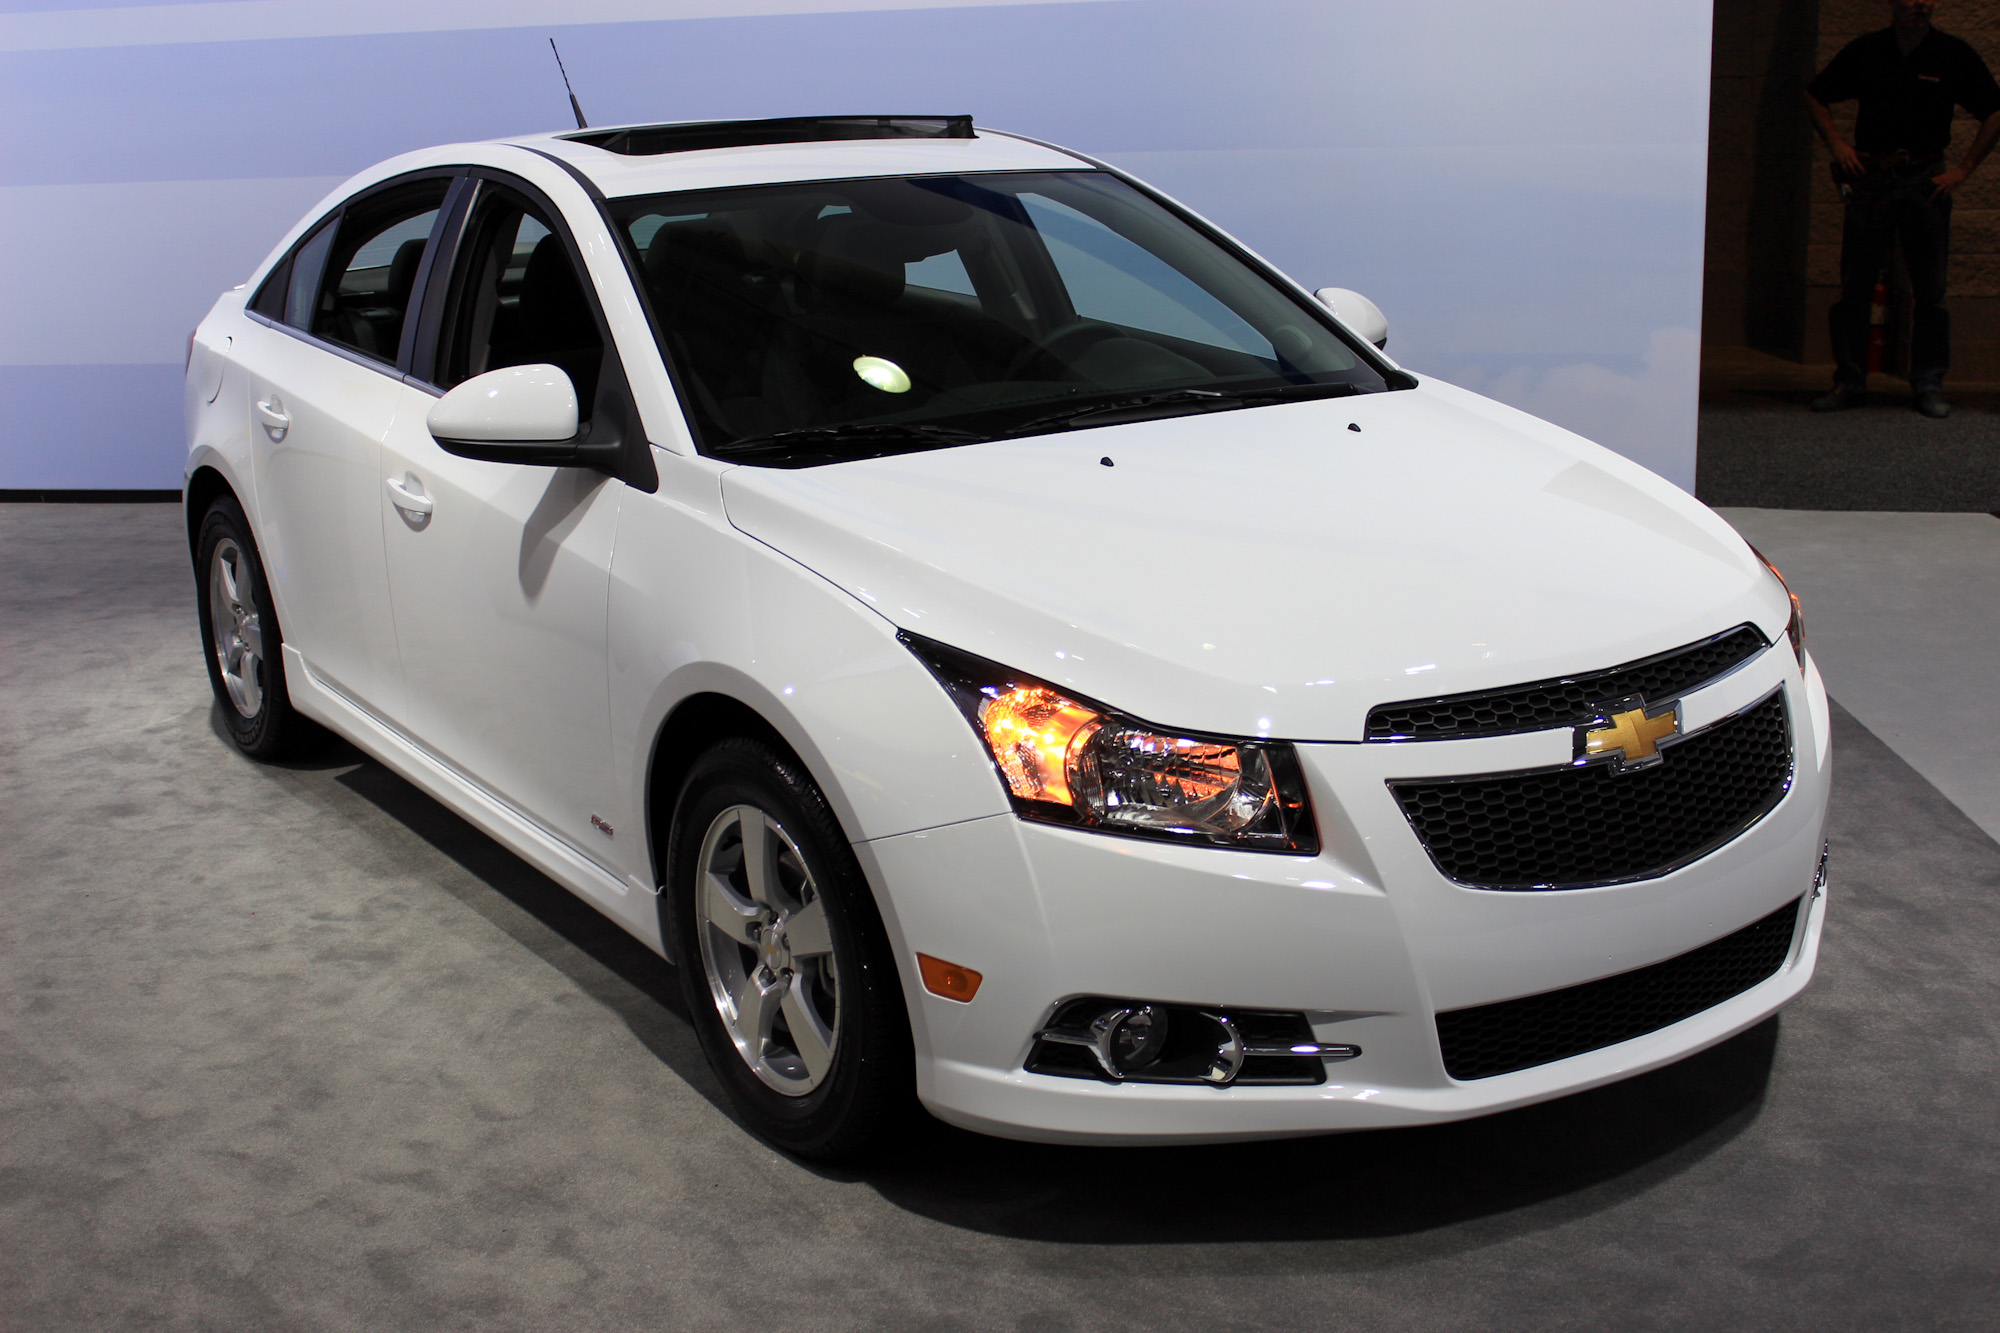 2015 Chevy Cruze Gets New Styling And Tech: 2014 New York ...